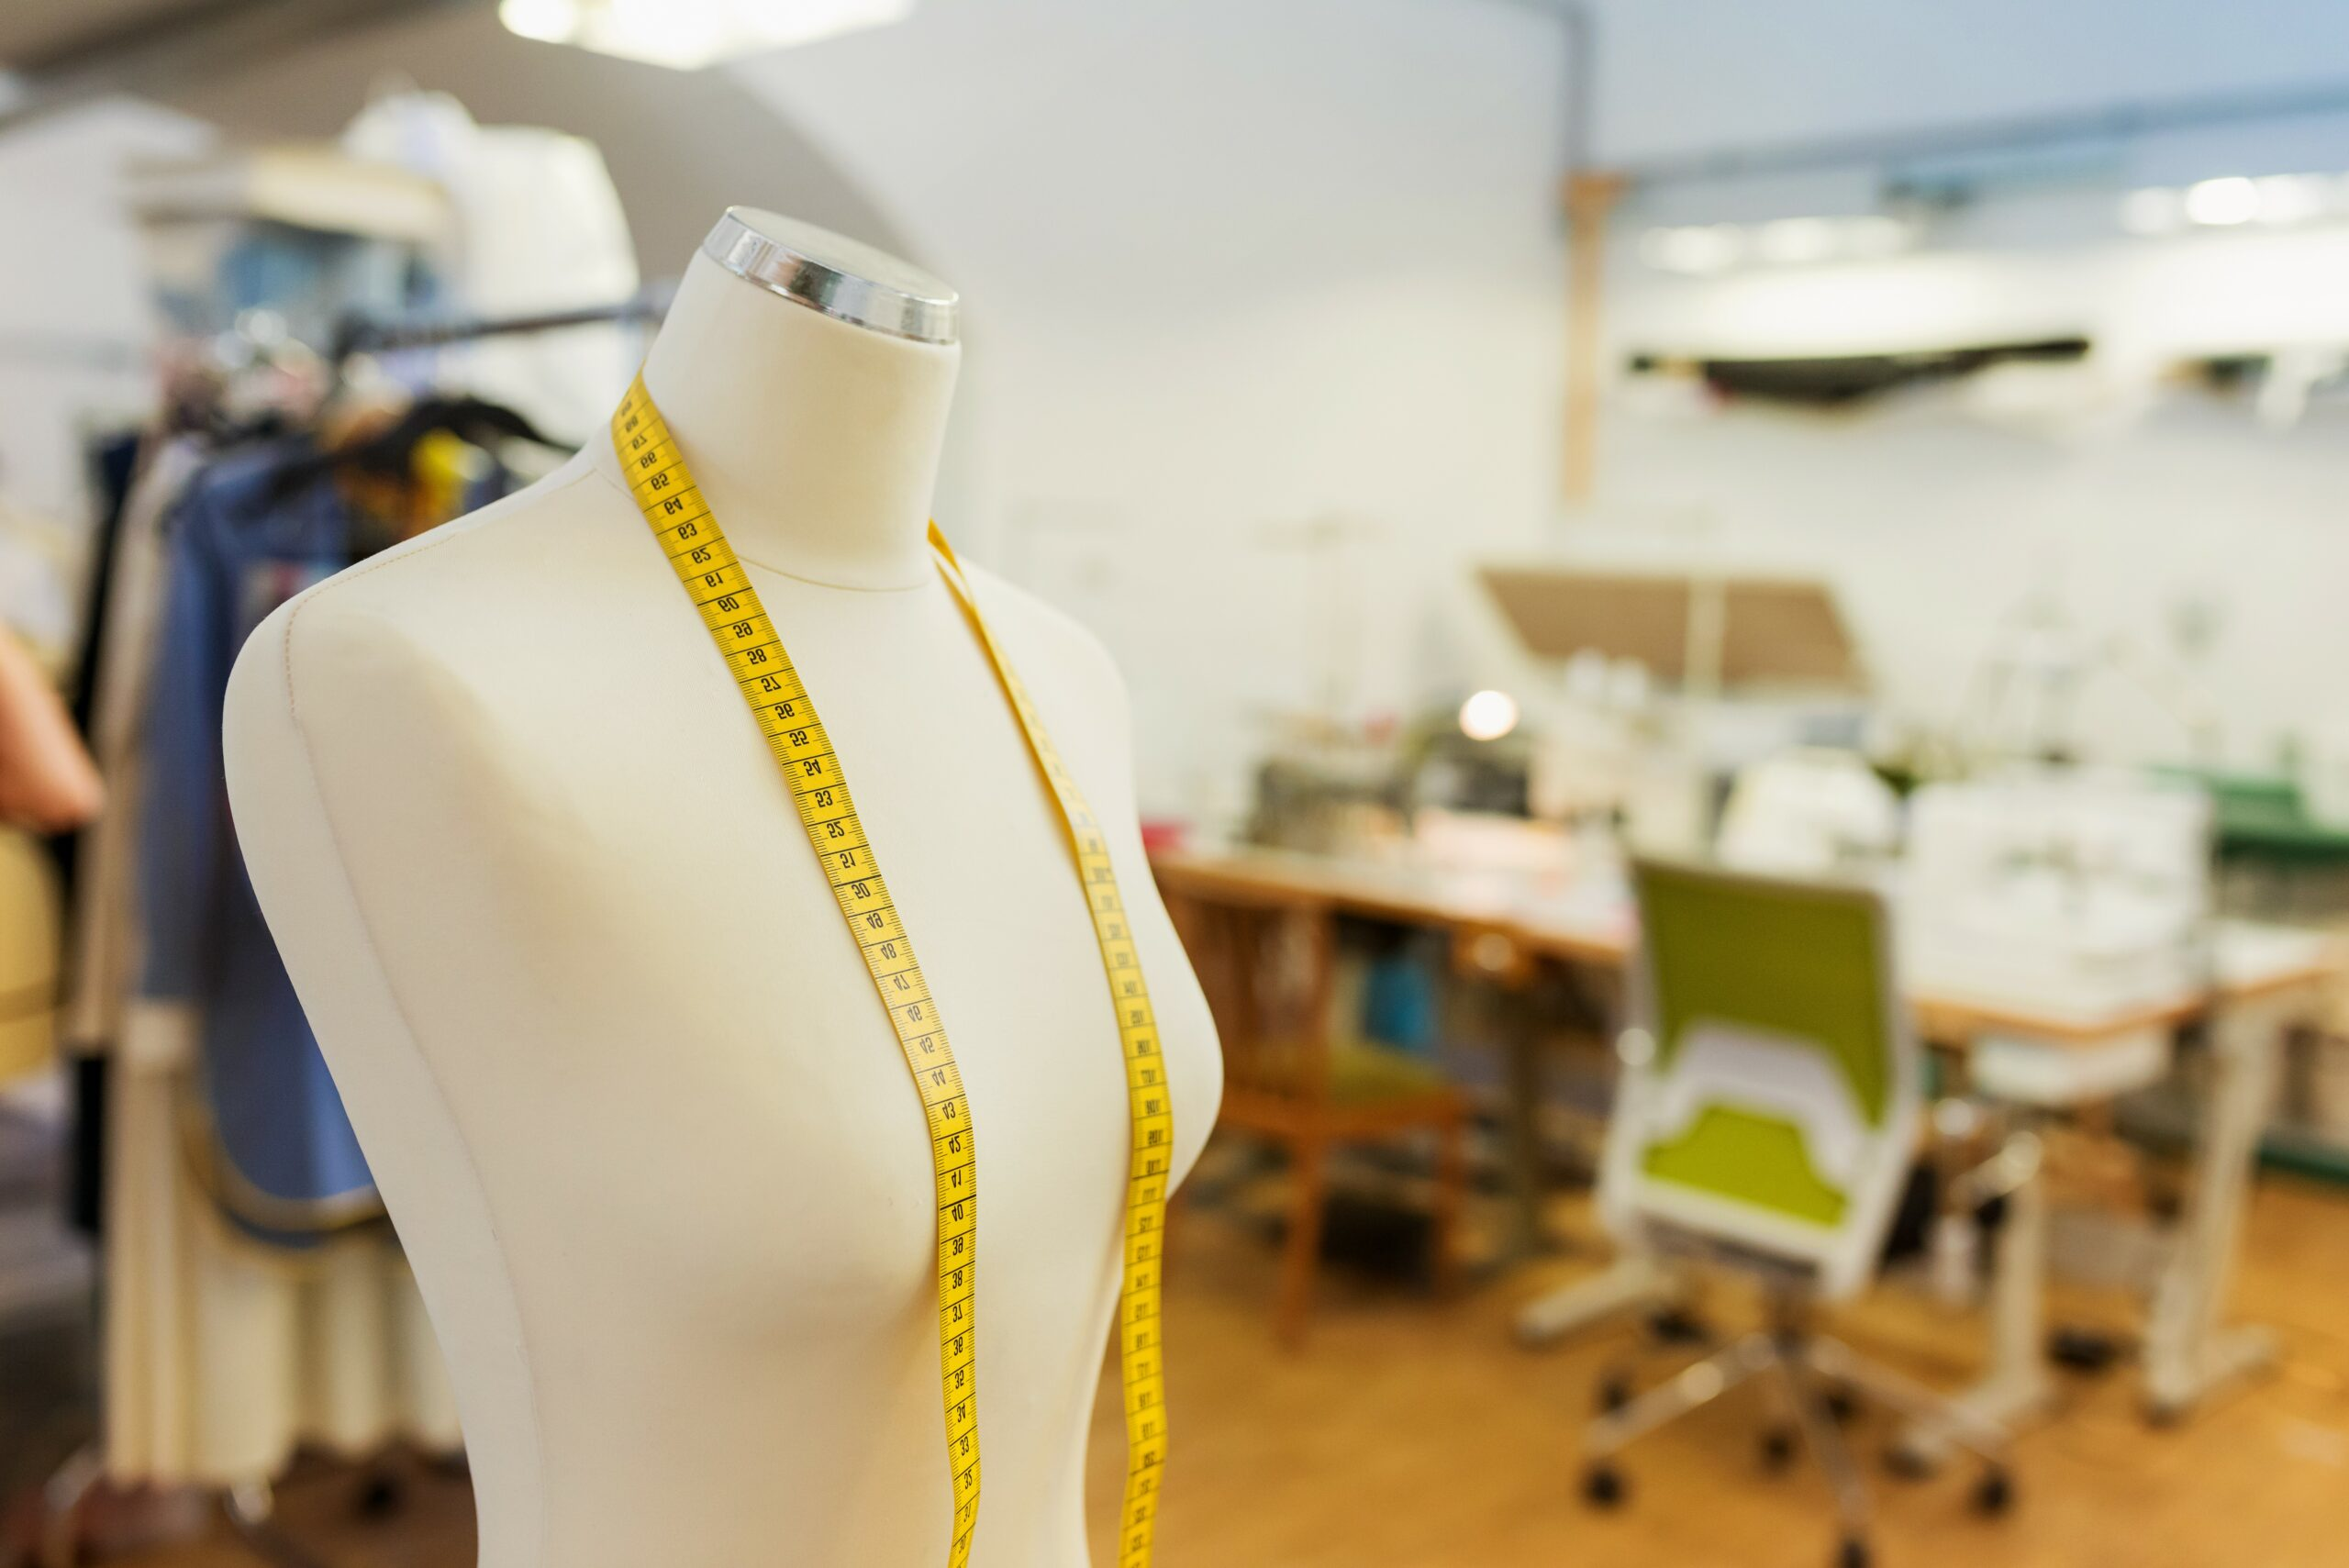 Tailors white textile dummy with yellow measure tape